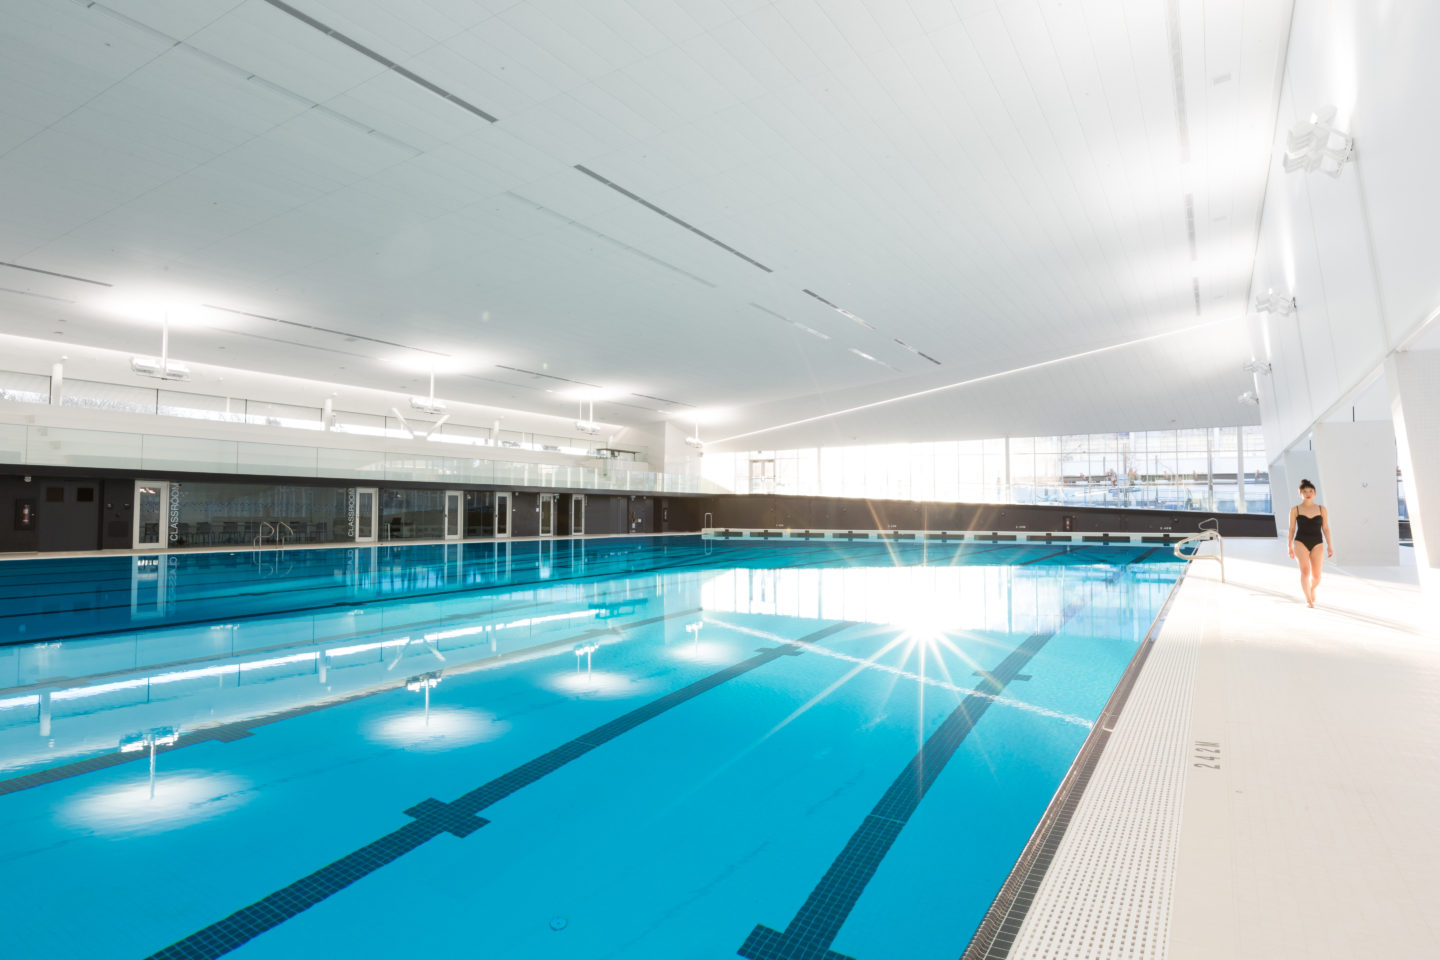 Ubc aquatic centre architectural design project vancouver for Pool design vancouver